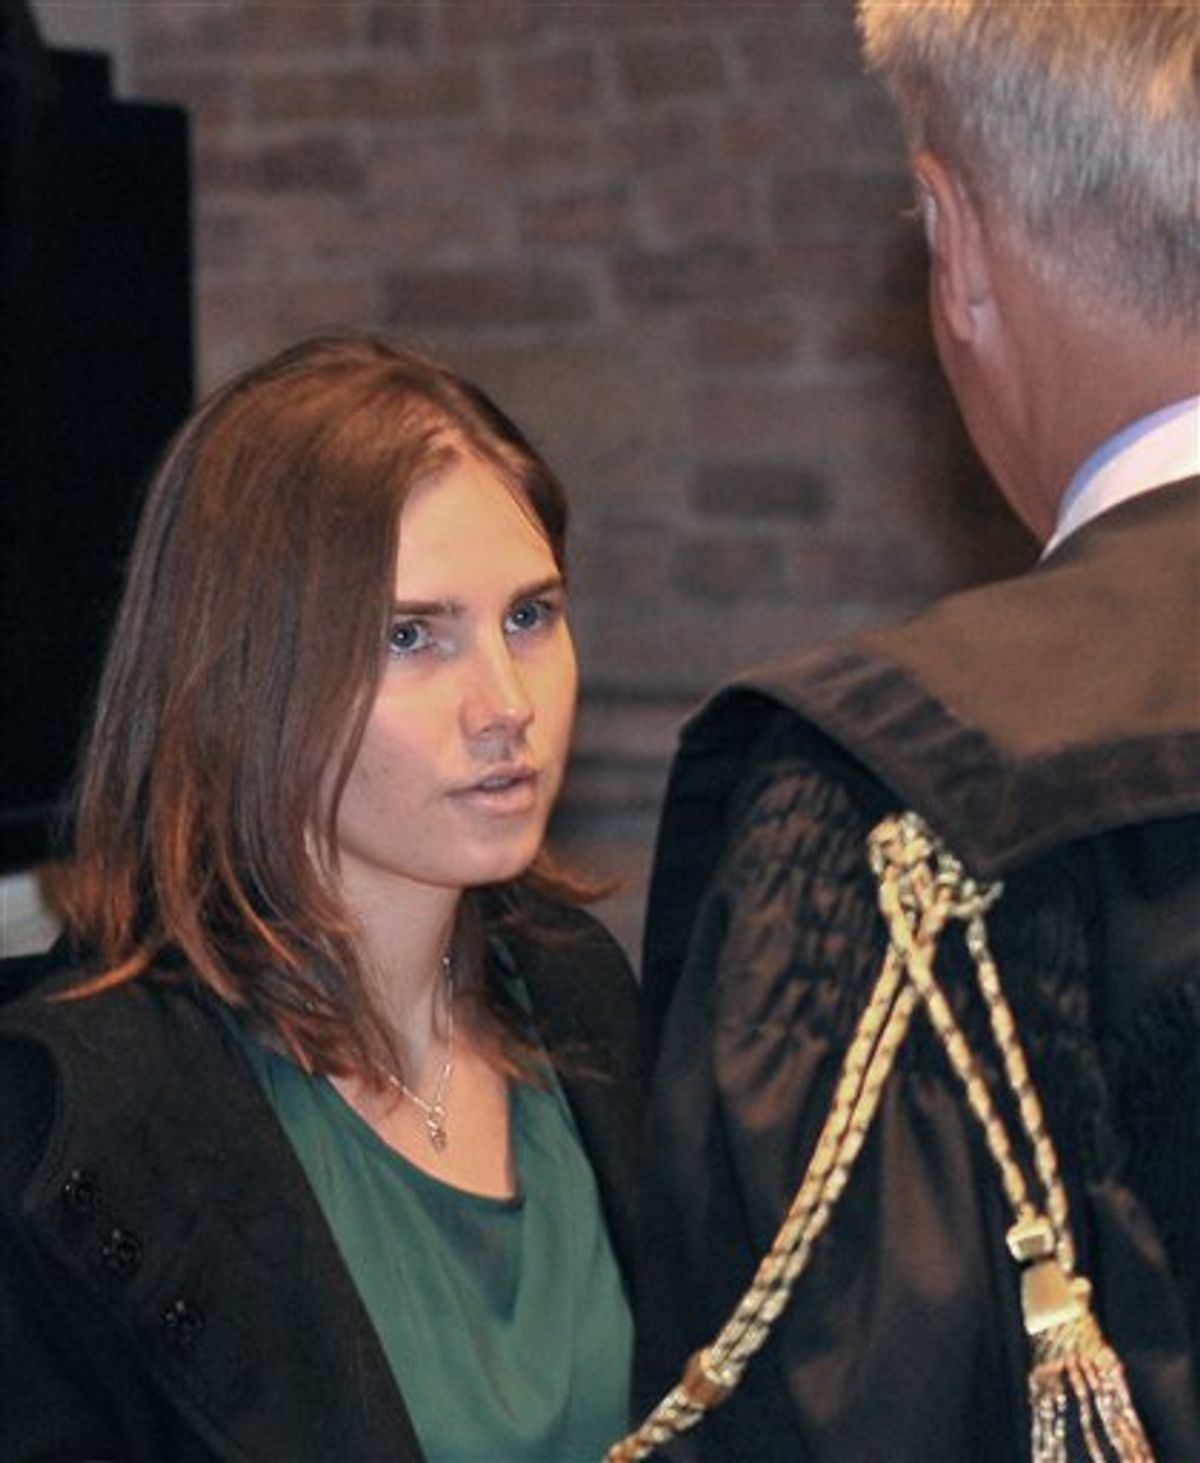 Amanda Knox talks with her lawyer Carlo Dalla Vedova upon arrival for an appeal hearing at the Perugia court, central Italy, Monday, Oct. 3, 2011.        (AP Photo/Antonio Calanni)